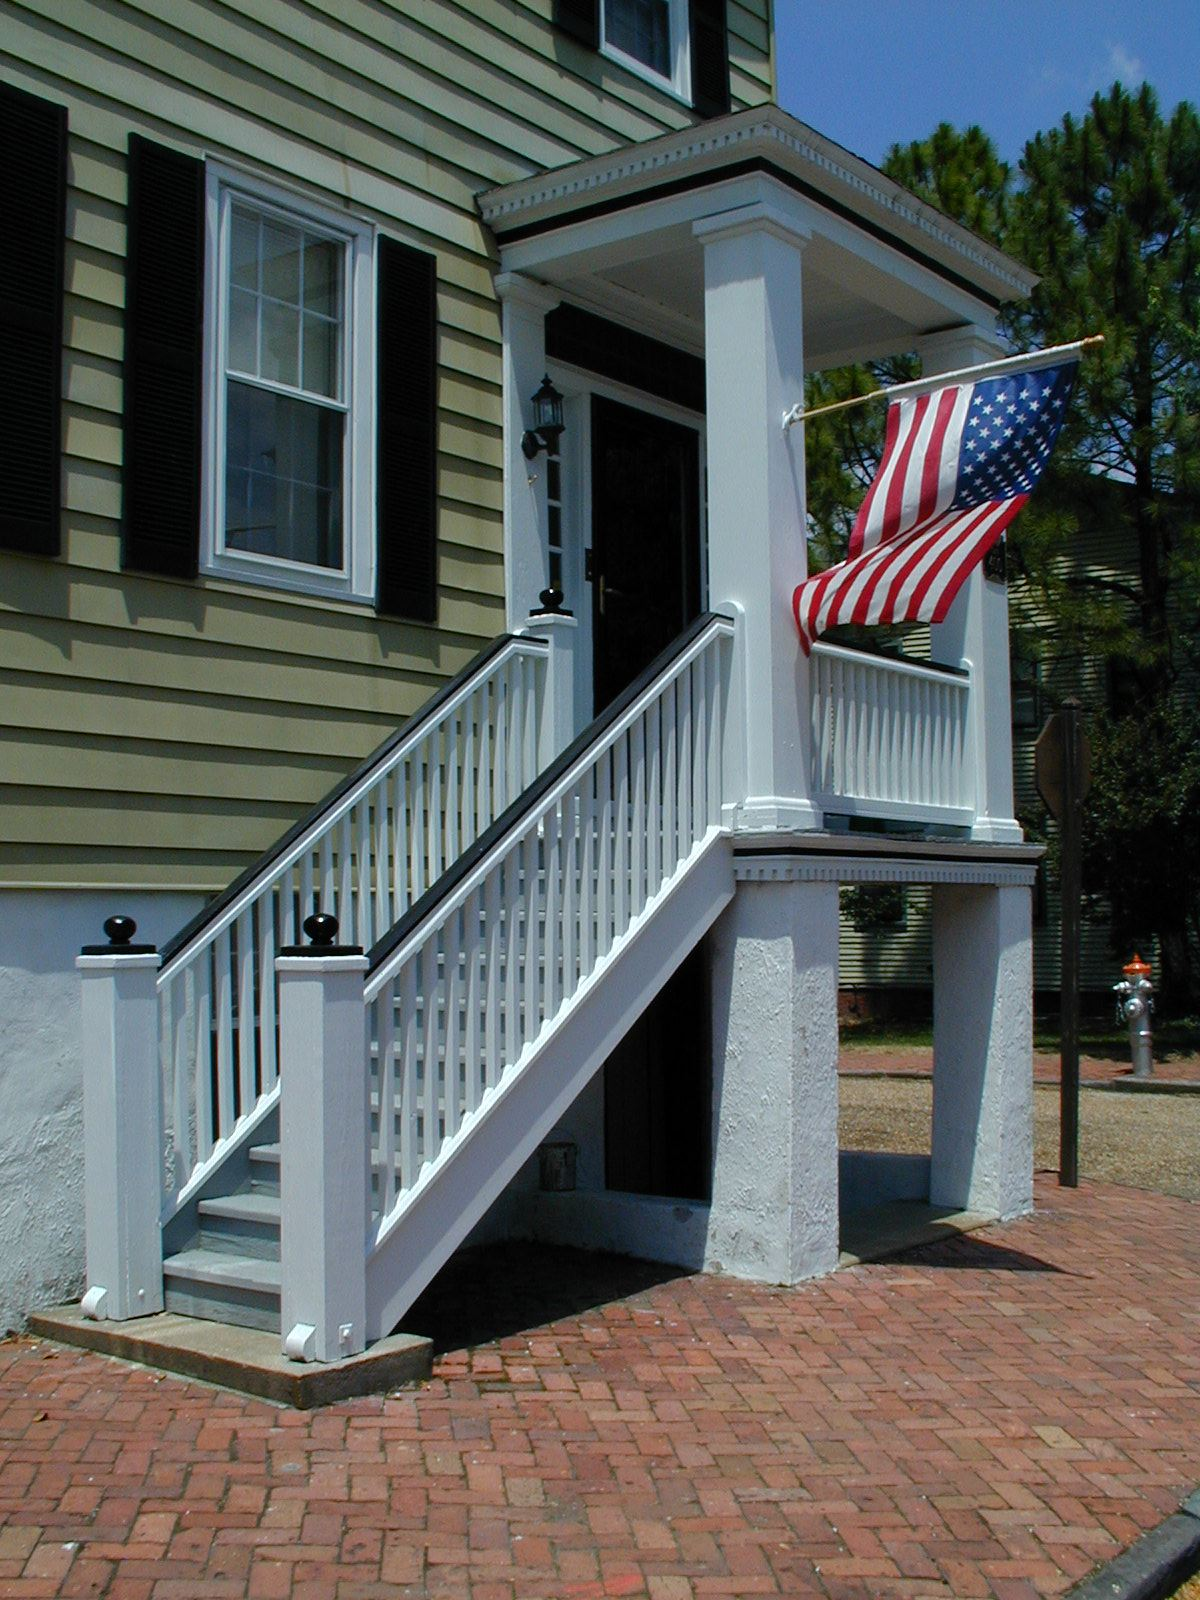 Home entrance with American flag posted